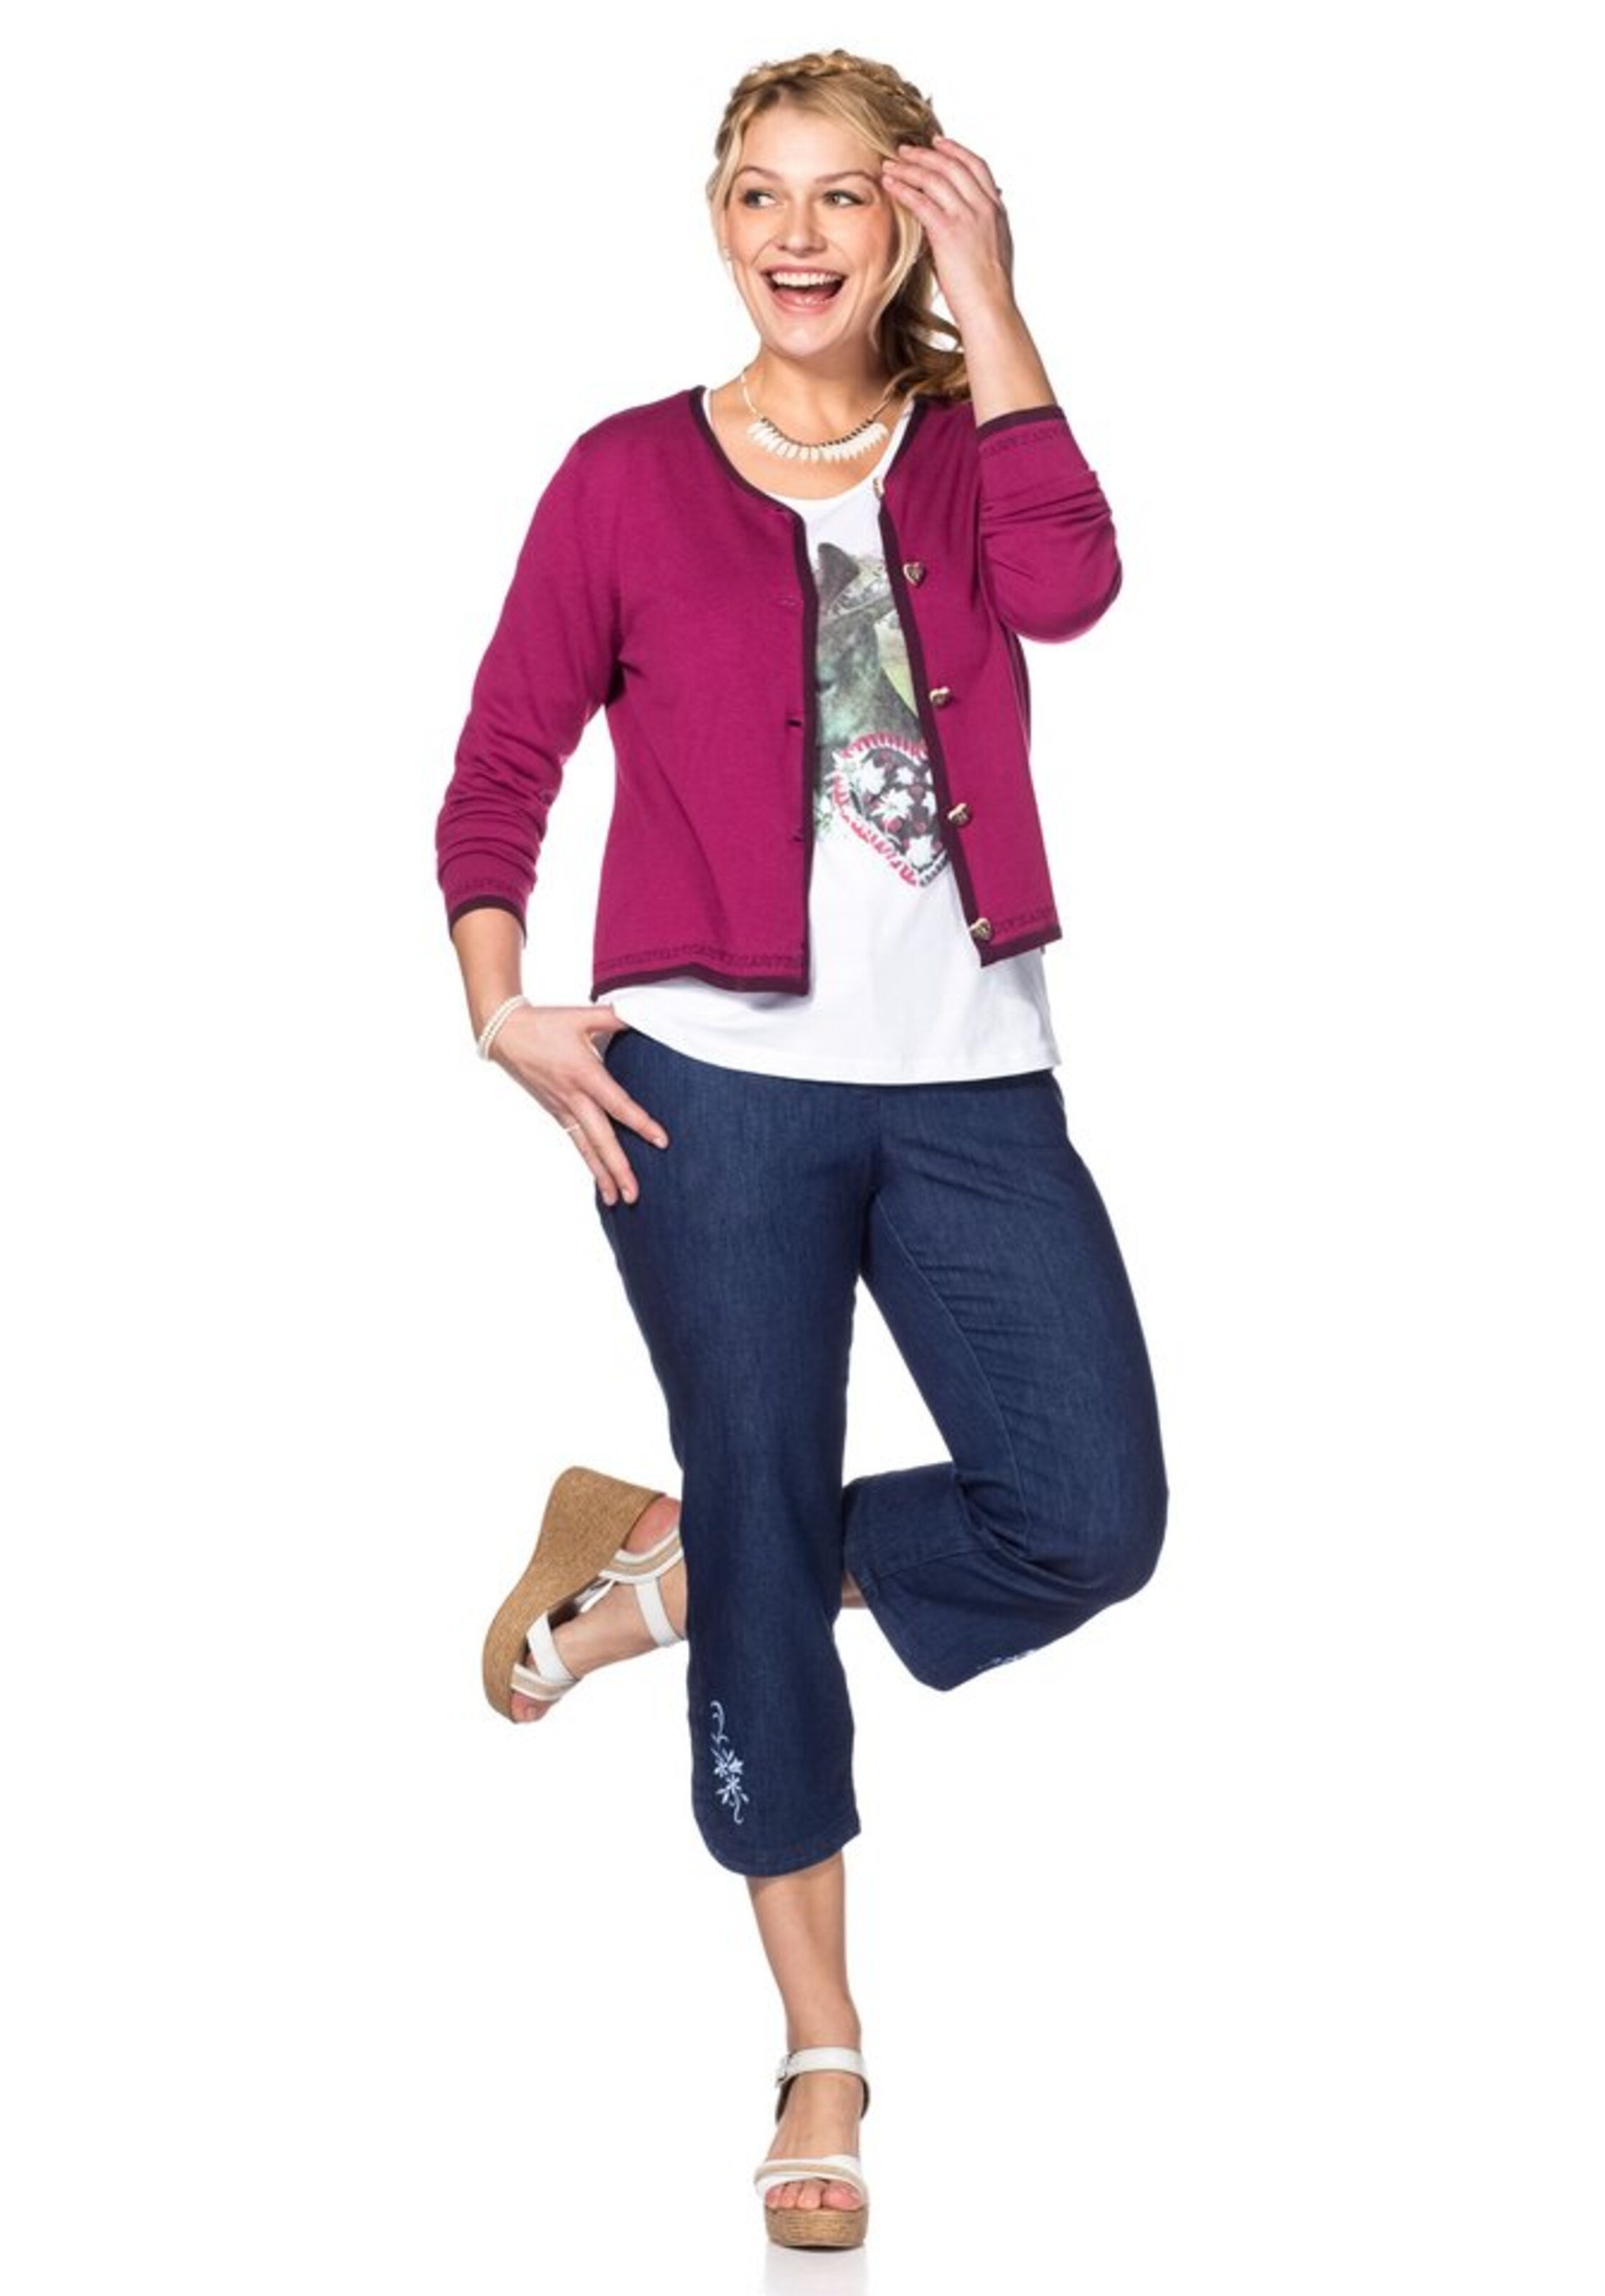 In Style Sheego Strickjacke Strickjacke Sheego BeereFuchsia Sheego BeereFuchsia Style In 5j34AqRL